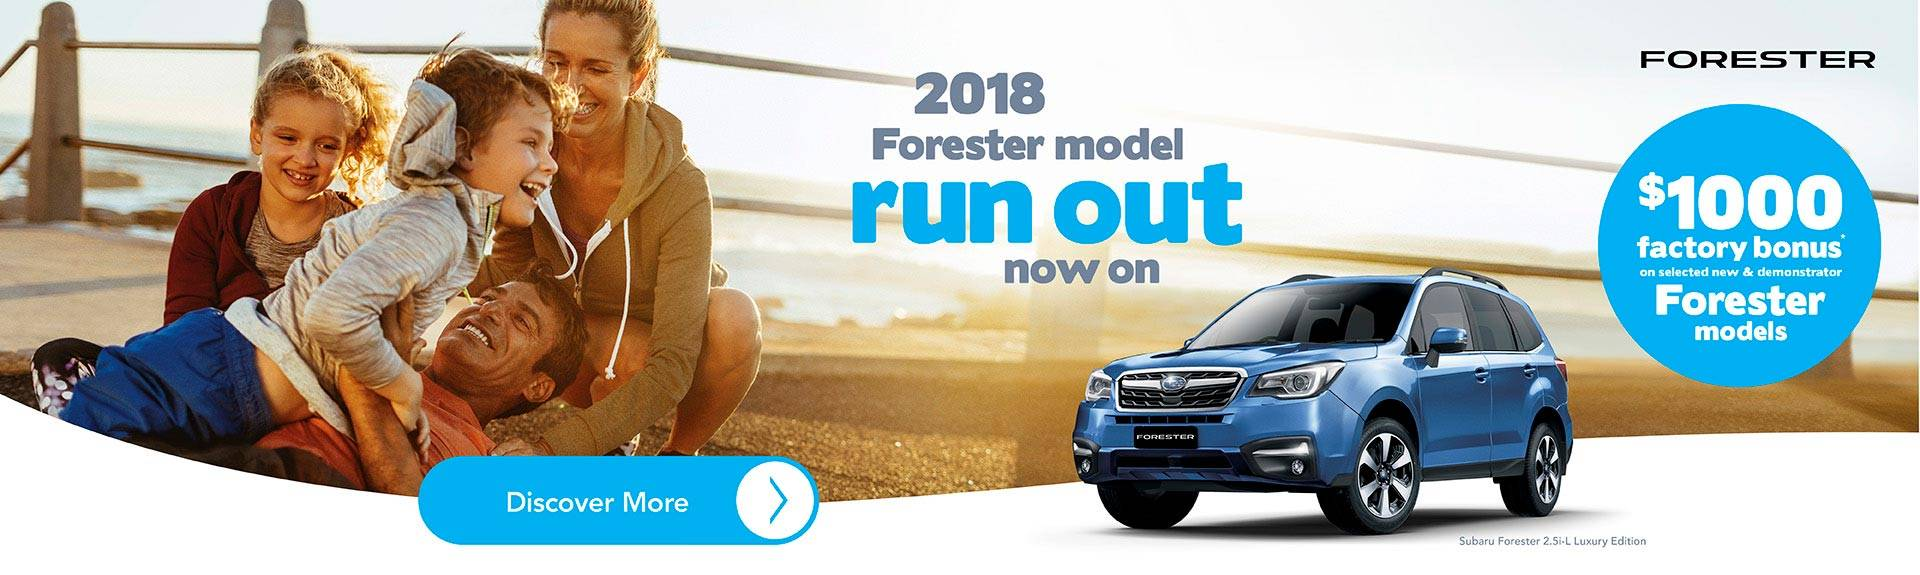 Subaru Forester Runout Offer